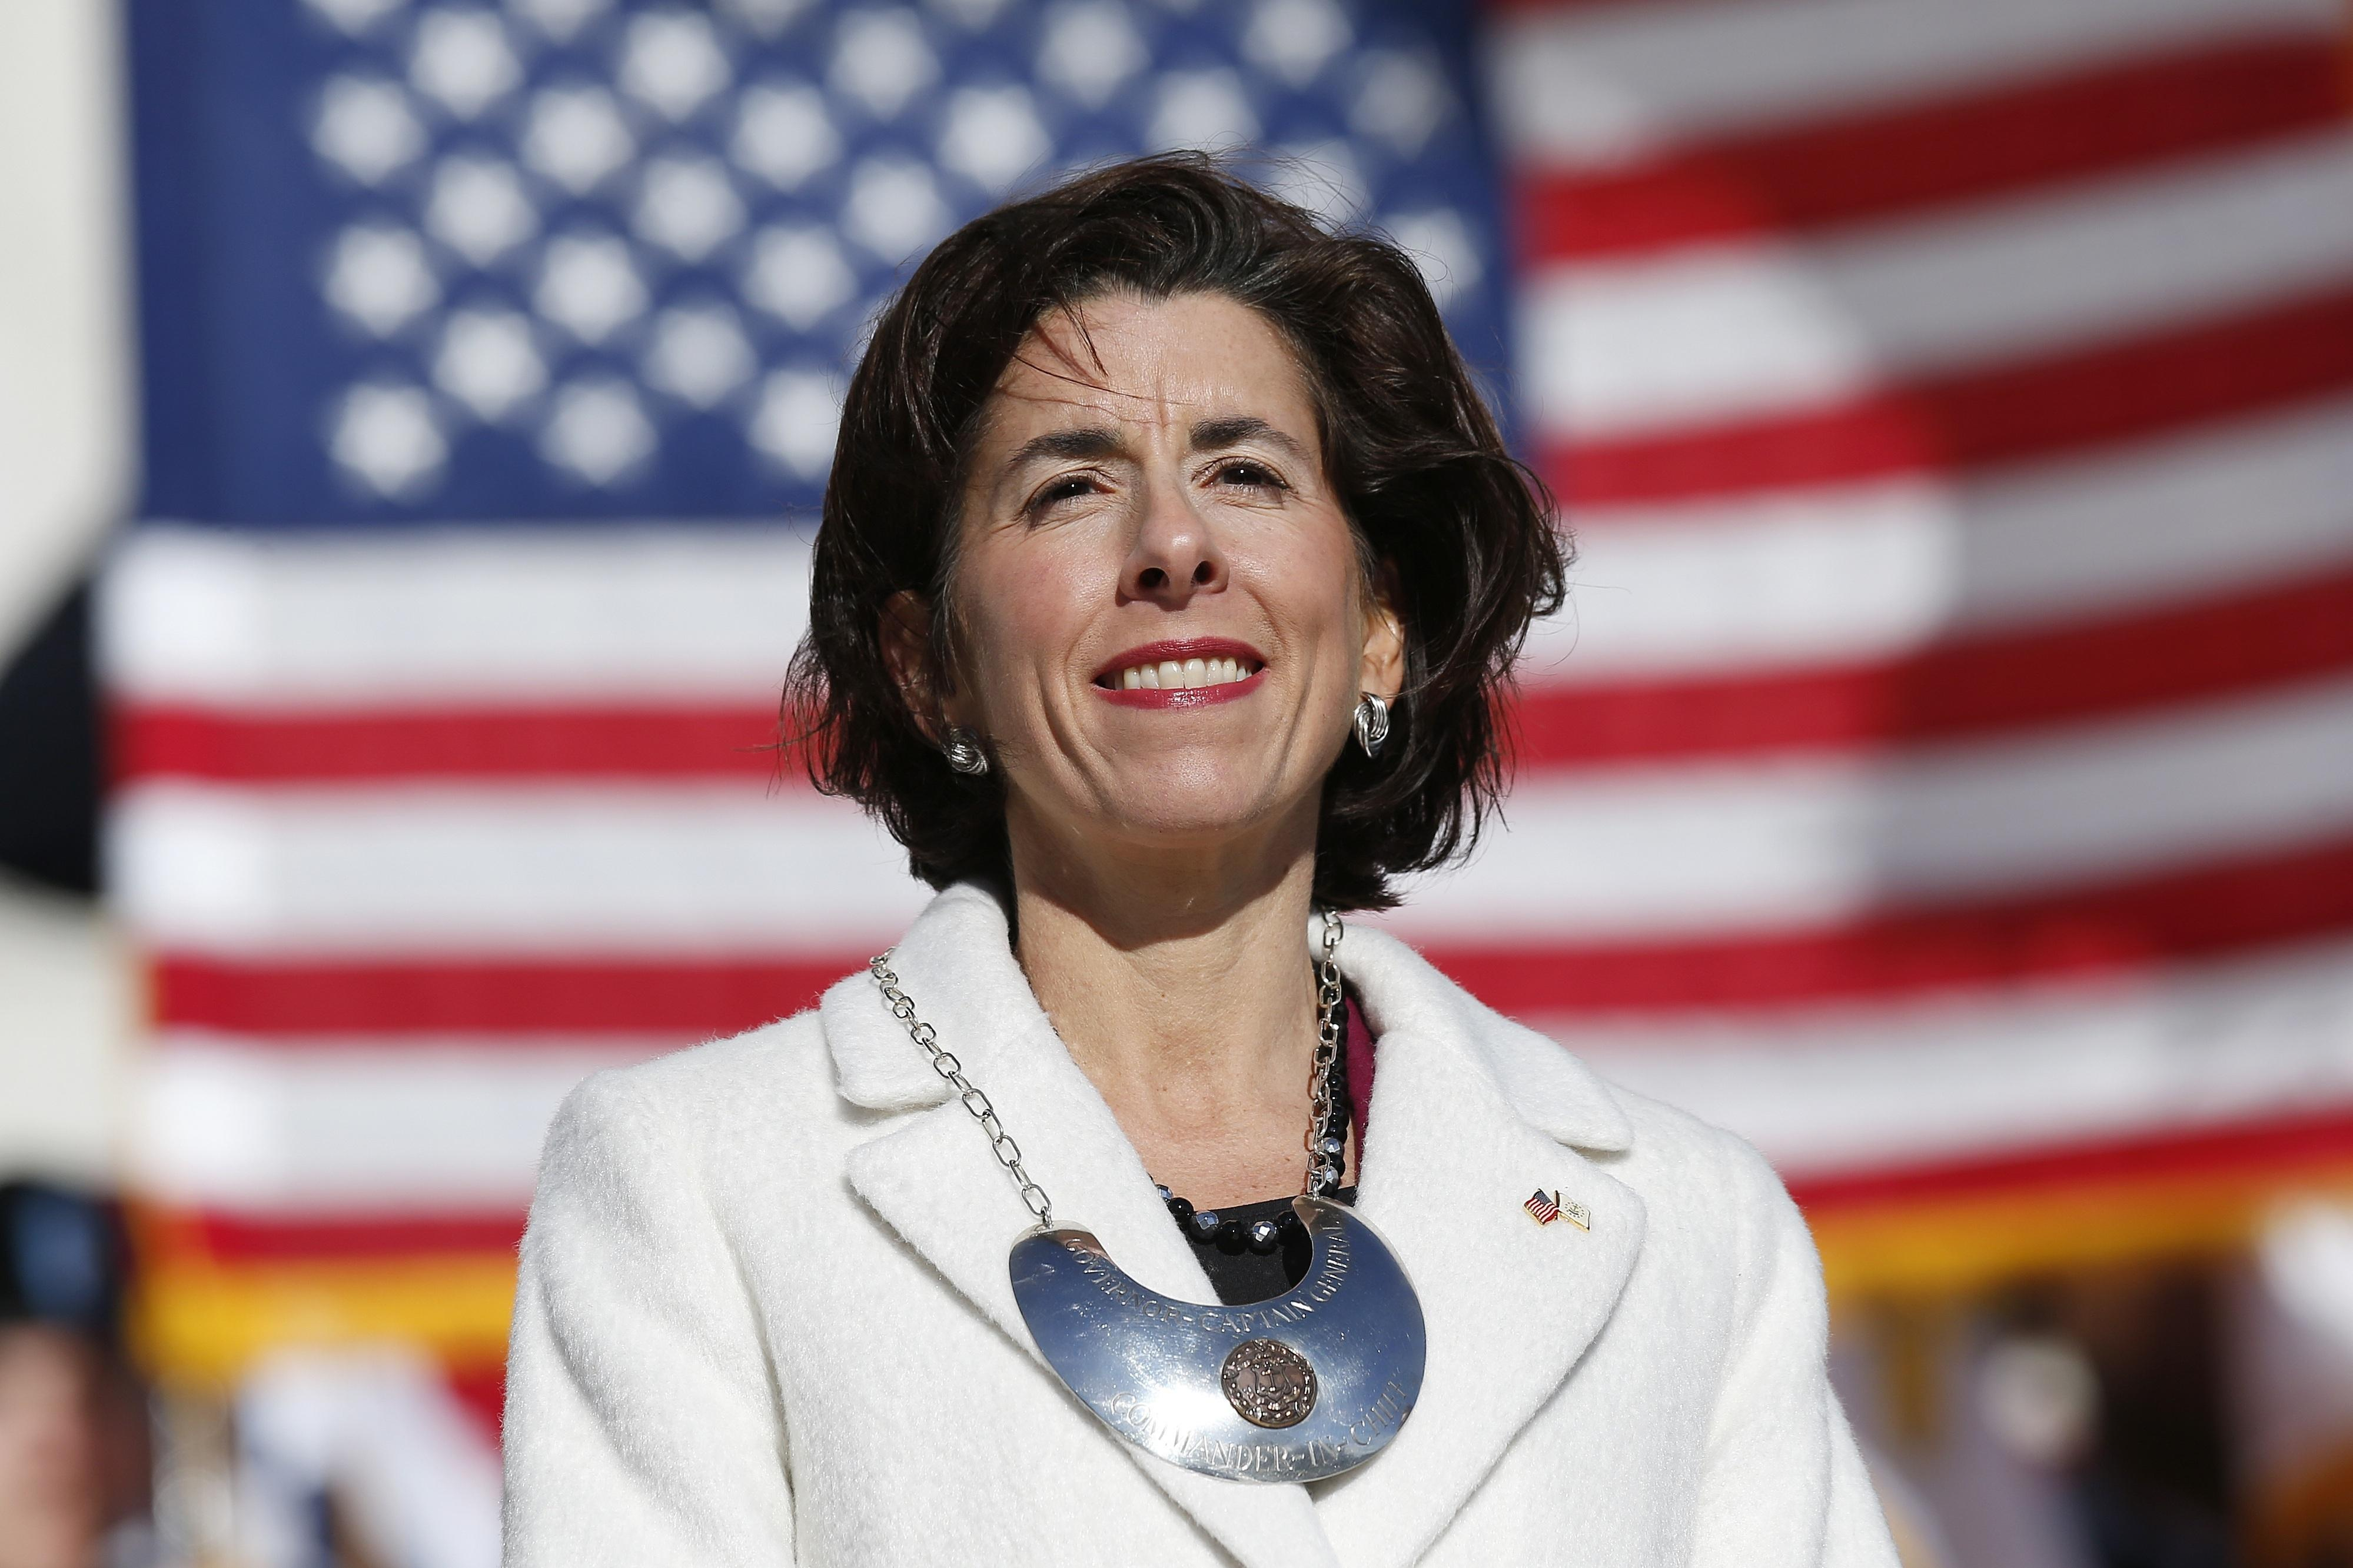 Rhode Island governor signs late-term abortion bill minutes after passage